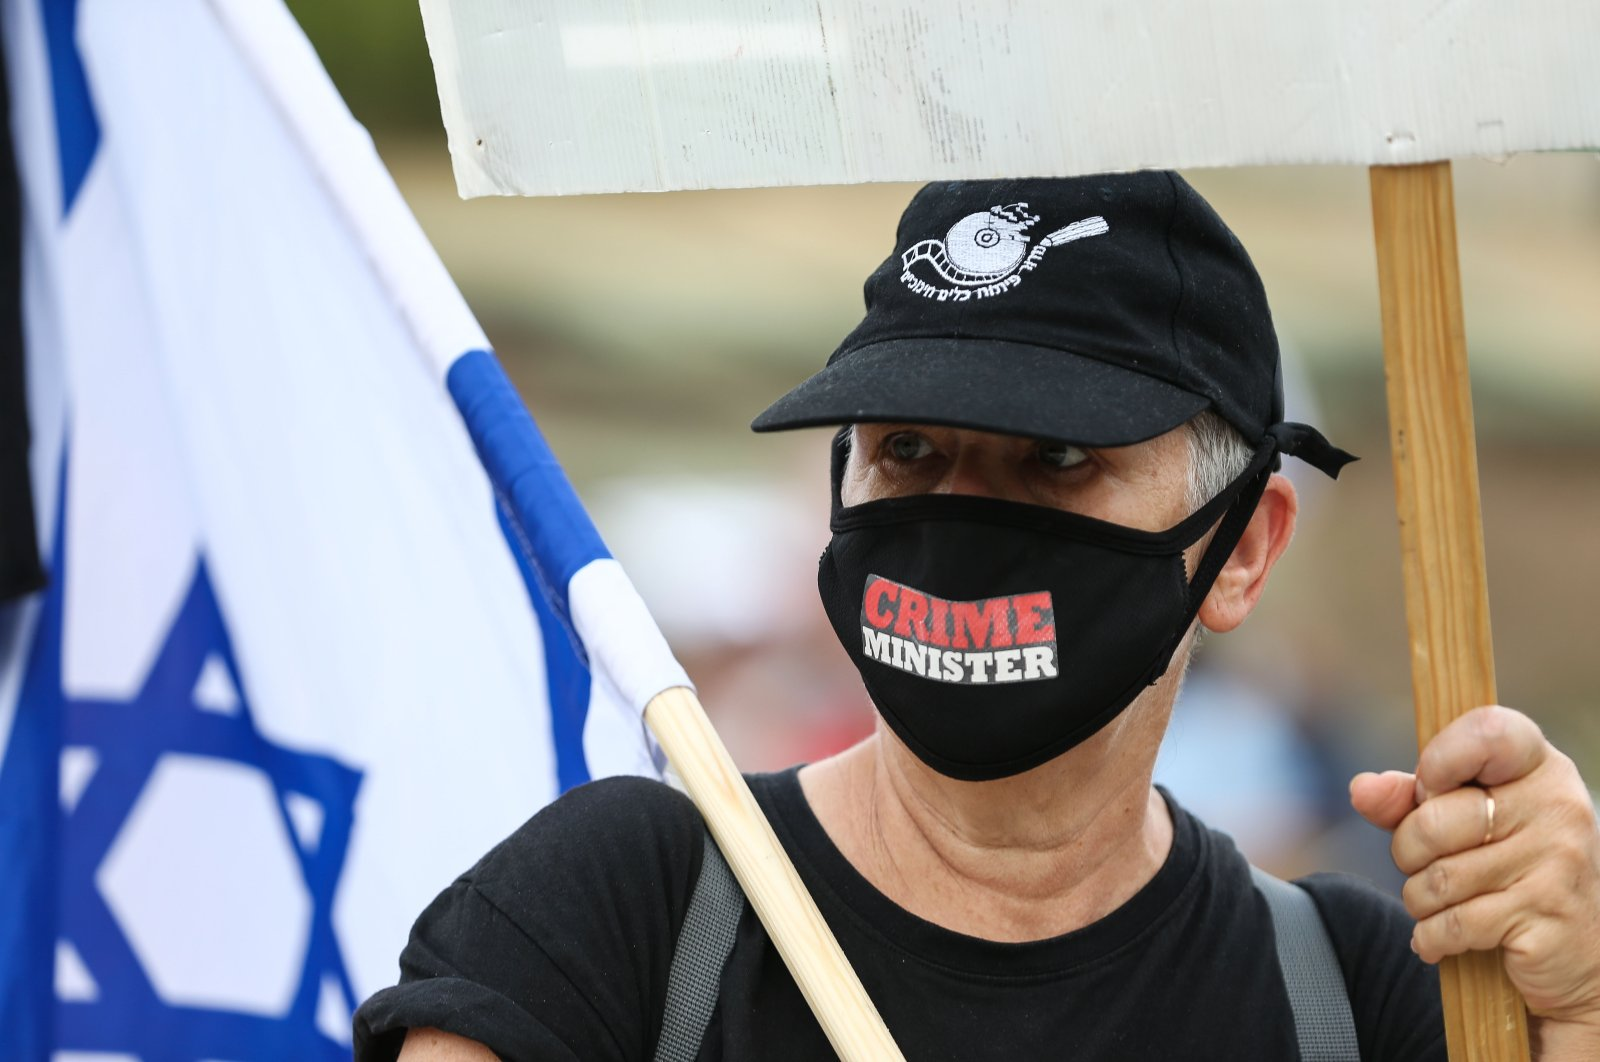 A protester in western Jeruselam is seen during a demonstration against the Netanyahu-Gantz unity government, May 14, 2020 (AA Photo)